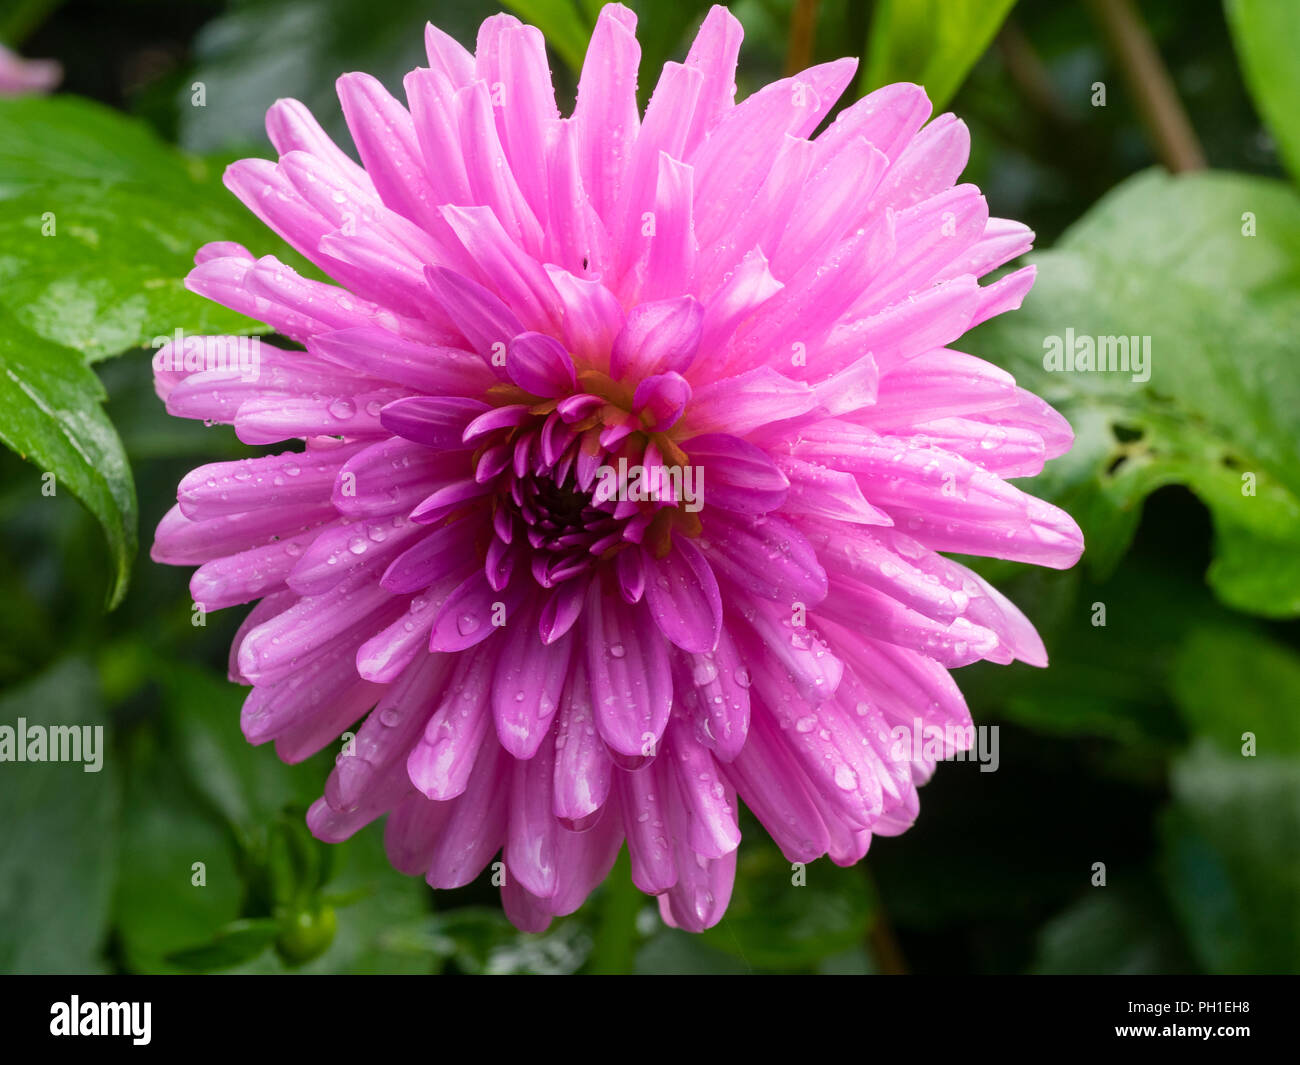 Semi Cactus Pink Flower Of The Summer Bloming Half Hardy Tuber